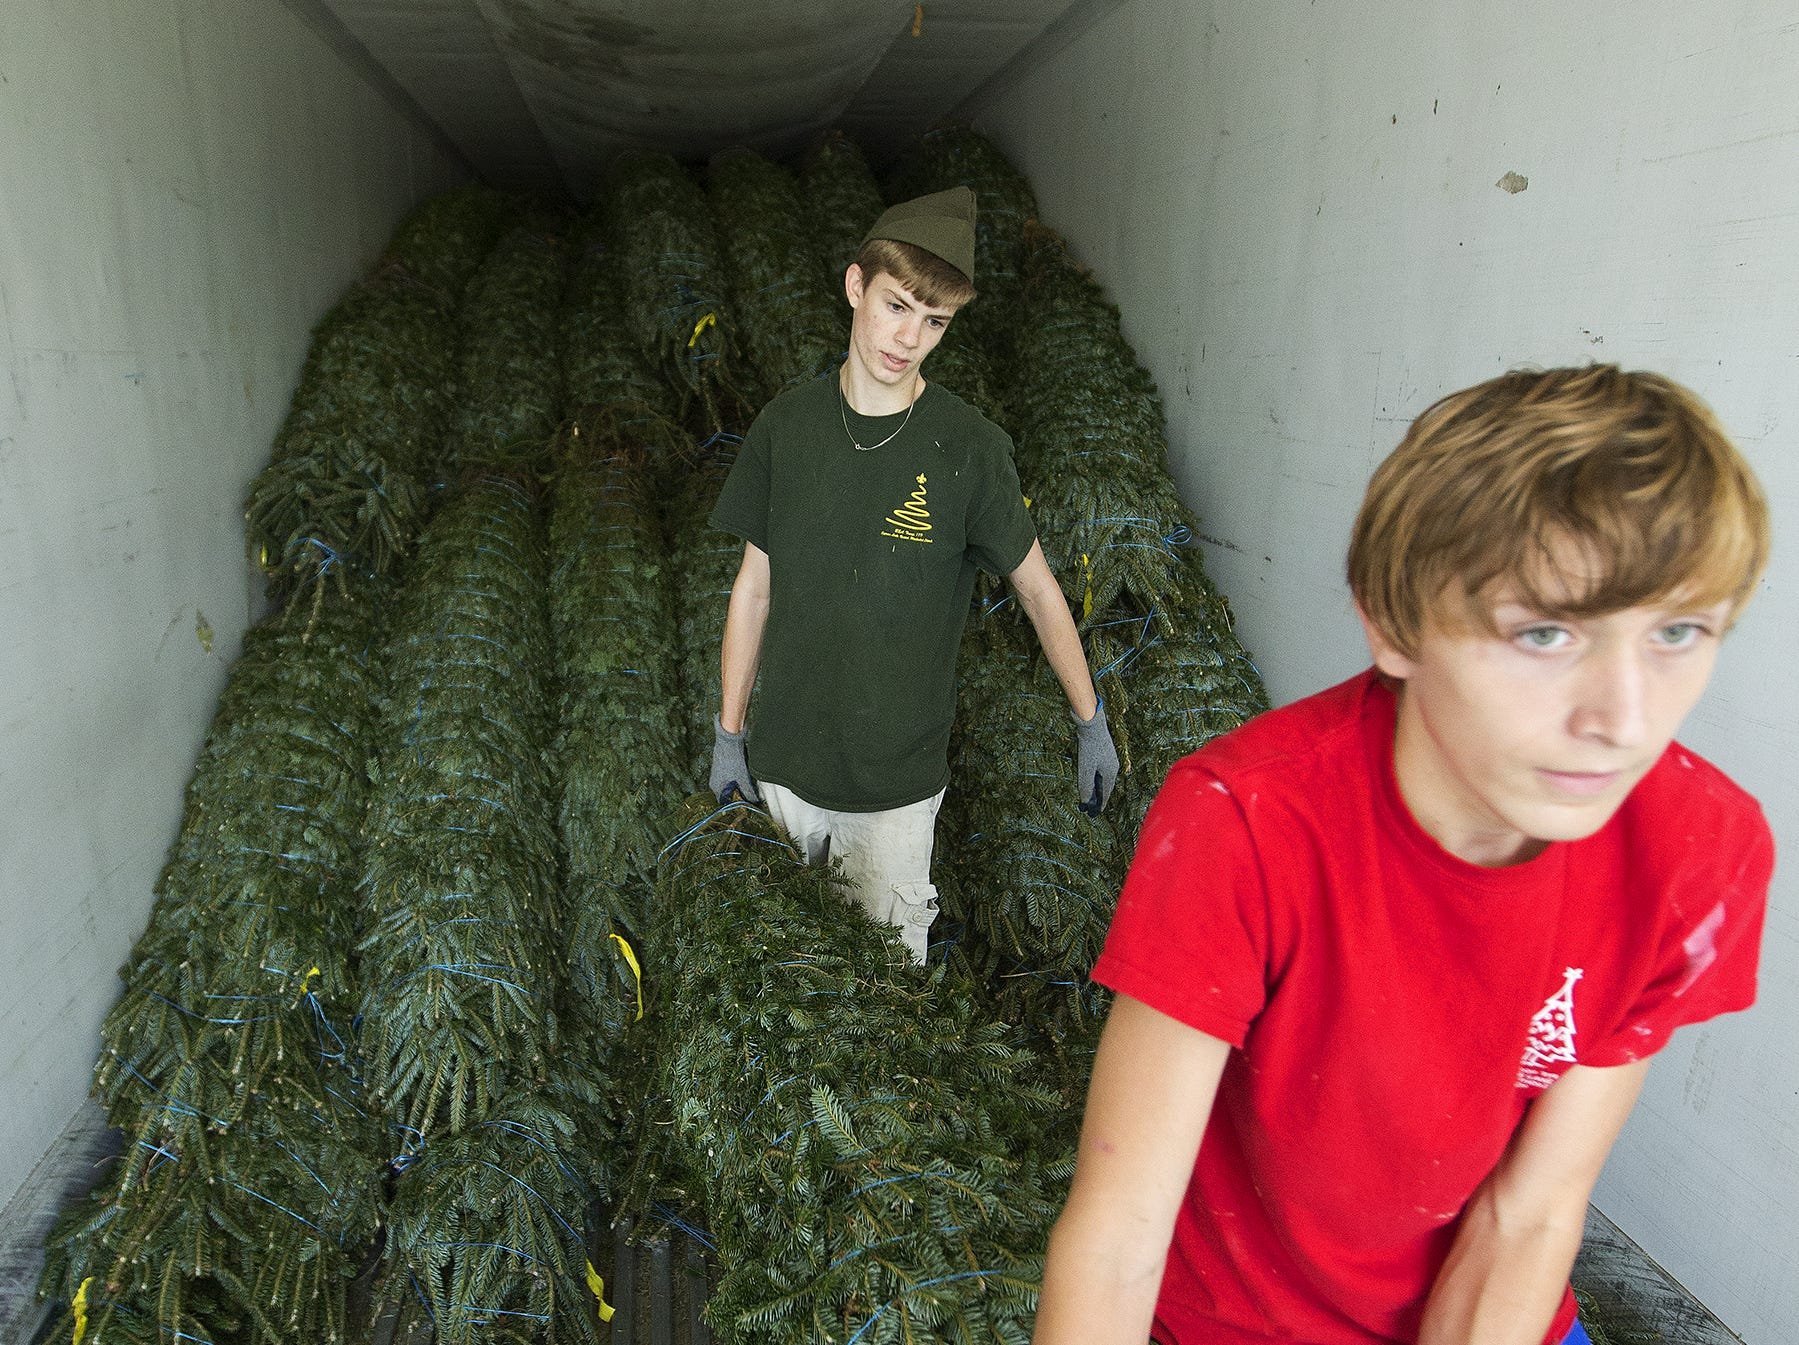 Seth Williams, 16, rear, and Nick Hodges, 15, of Boy Scout Troop 119, help unload more than 300 Christmas trees  Friday. KINFAY MOROTI/THE NEWS-PRESS… Seth Williams, 16, rear, and Nick Hodges, 15, of Boy Scout Troop 119, help unload more than 300 Christmas trees on Friday (11/34/17) at Cypress Lake United Methodist Church in south Fort Myers. The troop is selling the five to 10 foot tall premium Frasier fir trees to raise money for their summer camp. The sale begins today and ends when all the trees are sold. The hours are Monday thru Friday (4 p.m. to 9 p.m), Saturday (9 a.m. to 9 p.m.) and Sunday (12 p.m. to 9 p.m.). The church is located at the intersection of Winkler Avenue and Cypress Lake Drive.